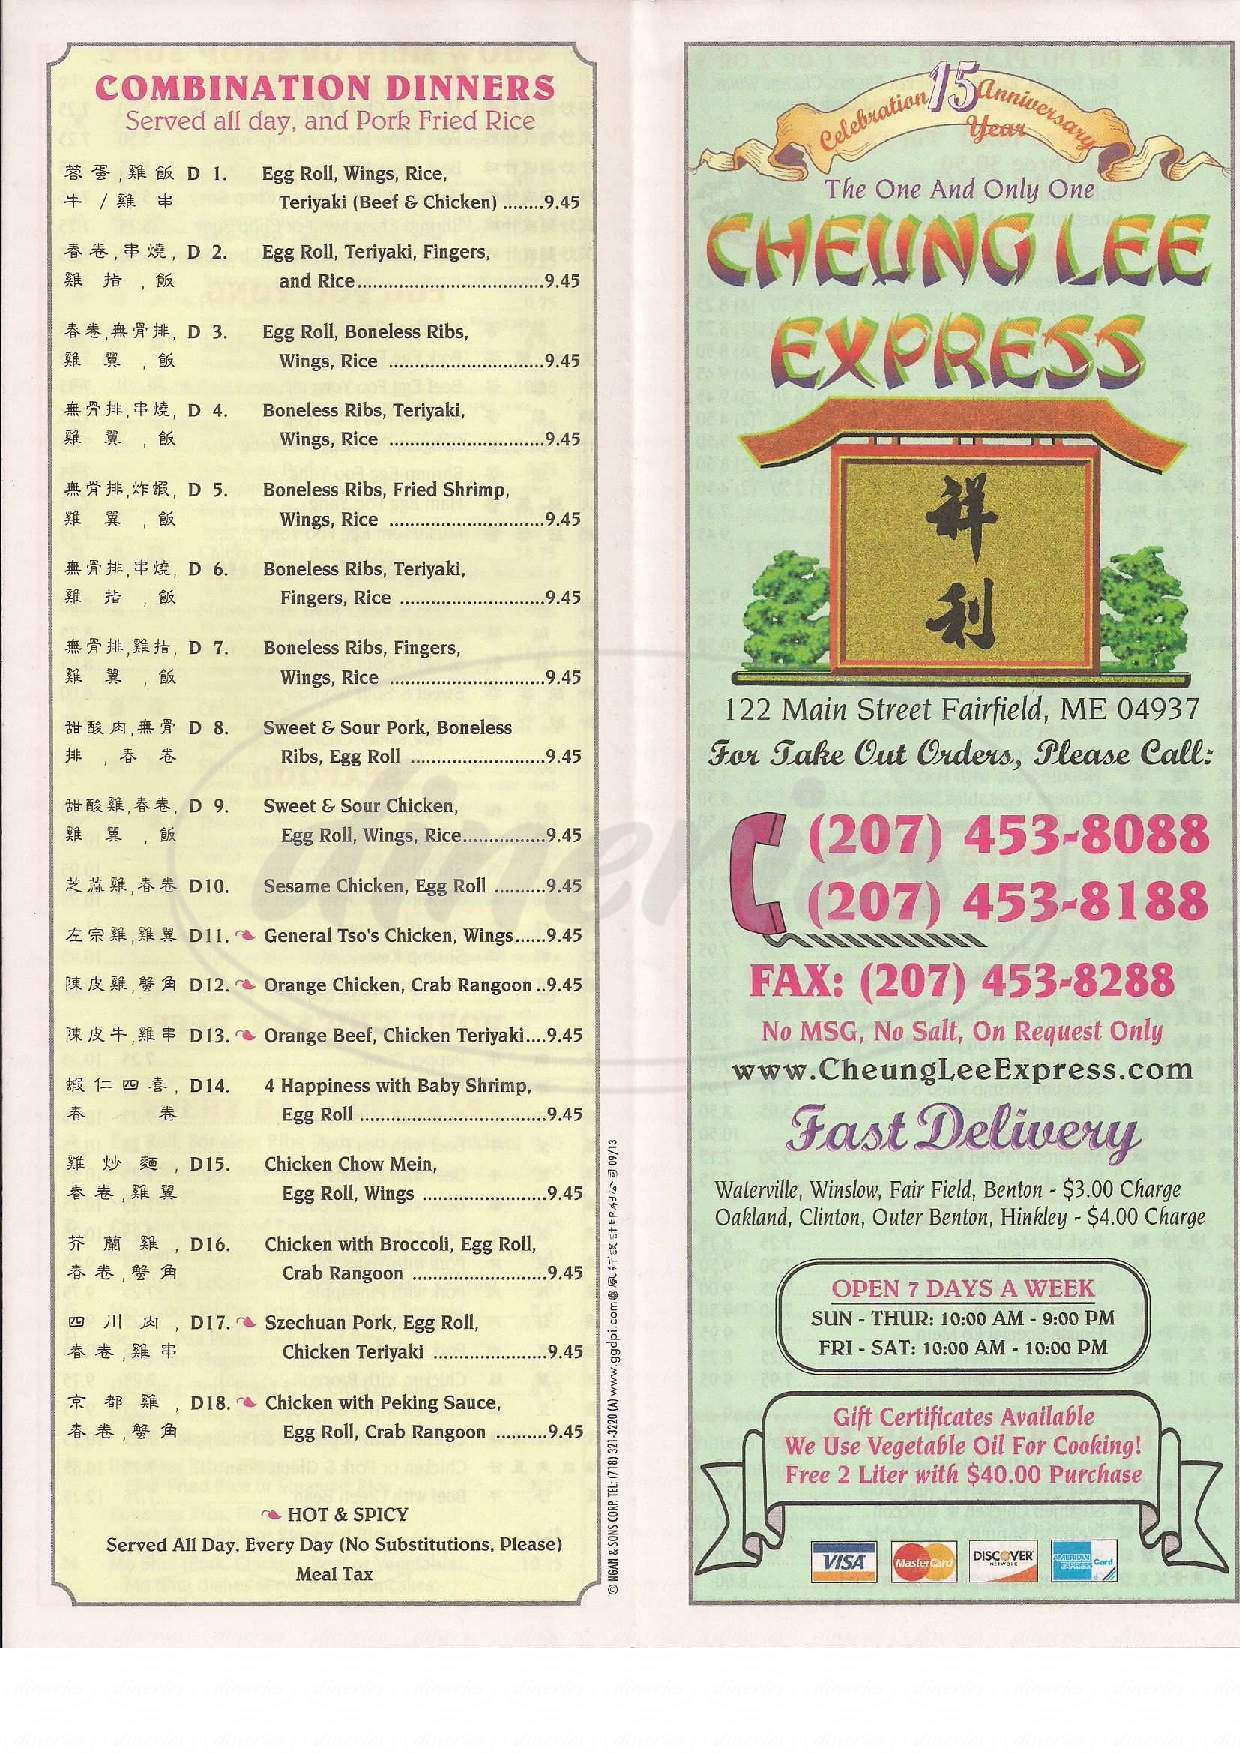 menu for Cheung Lee Express